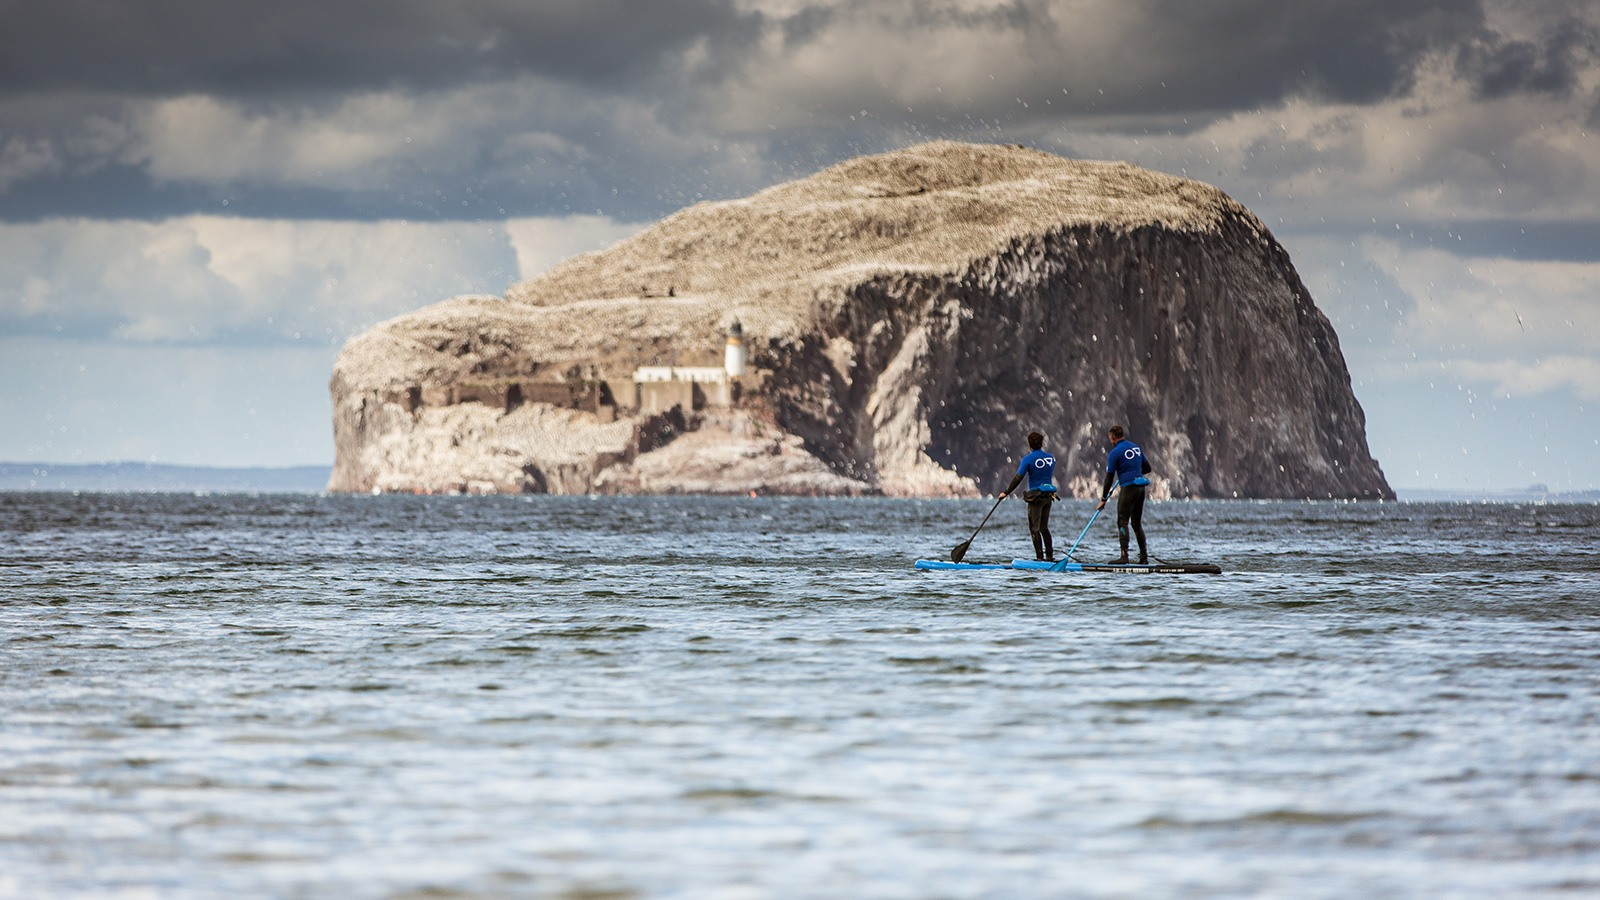 paddleboarding at bass rock east lothian Scotland 1600